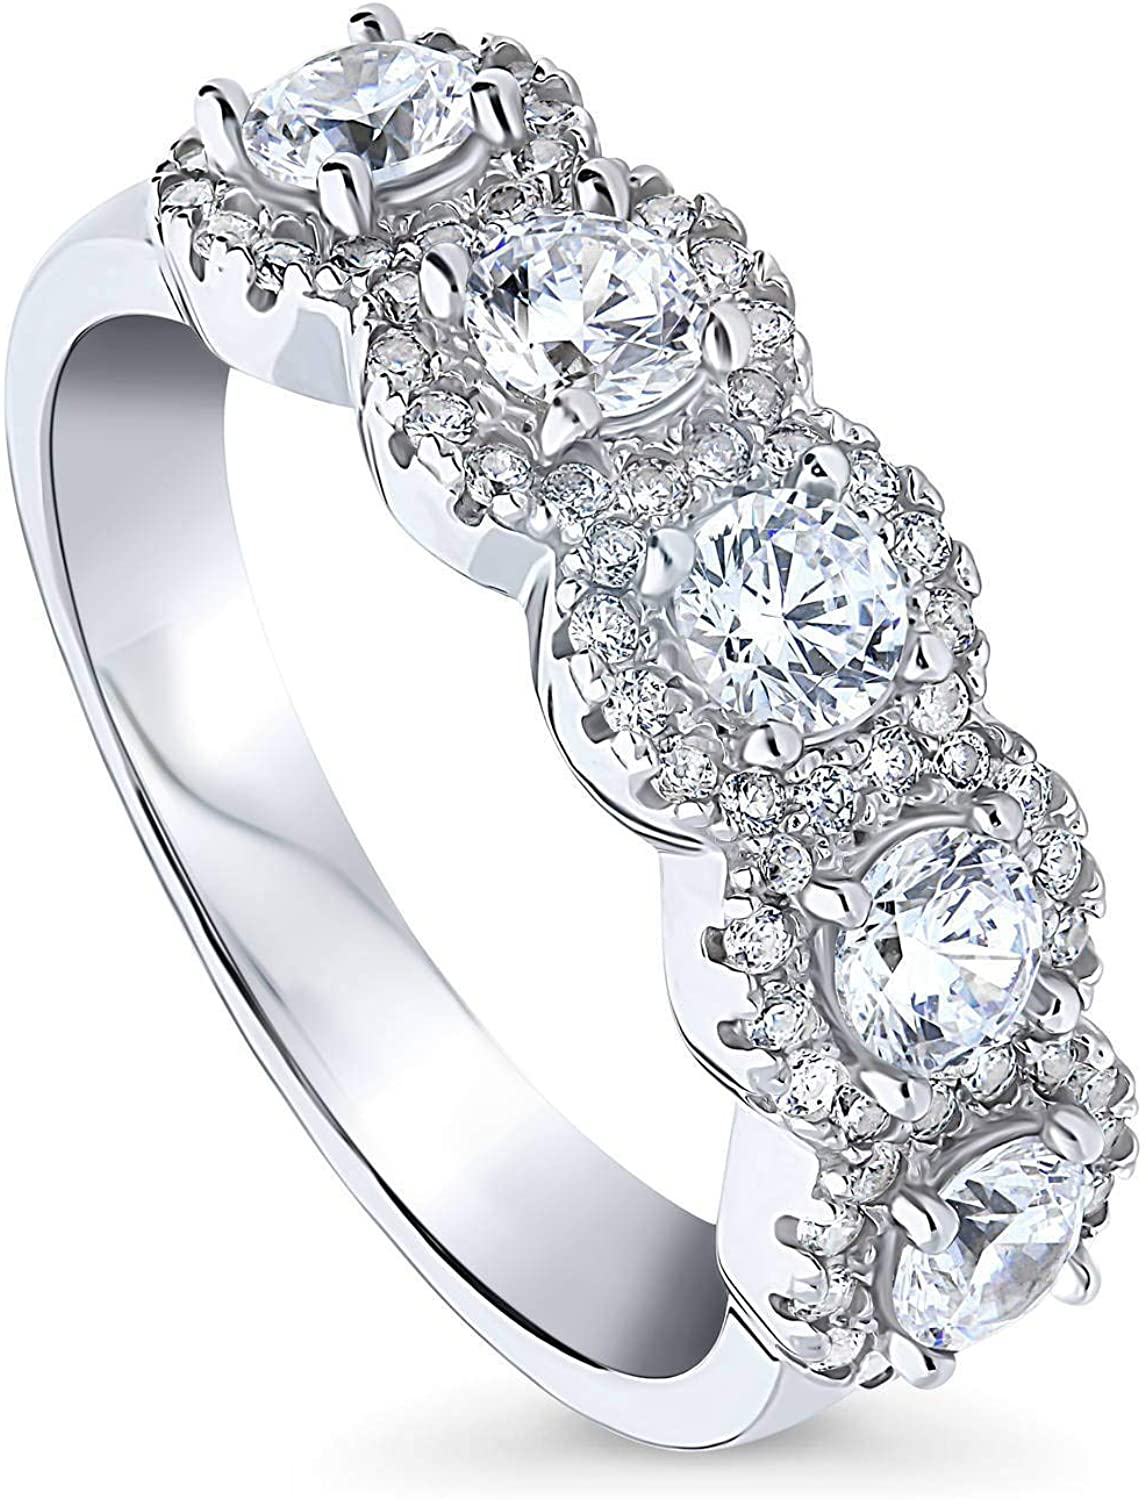 BERRICLE Rhodium Plated Sterling Silver Round Cubic Zirconia CZ 5-Stone Anniversary Wedding Band